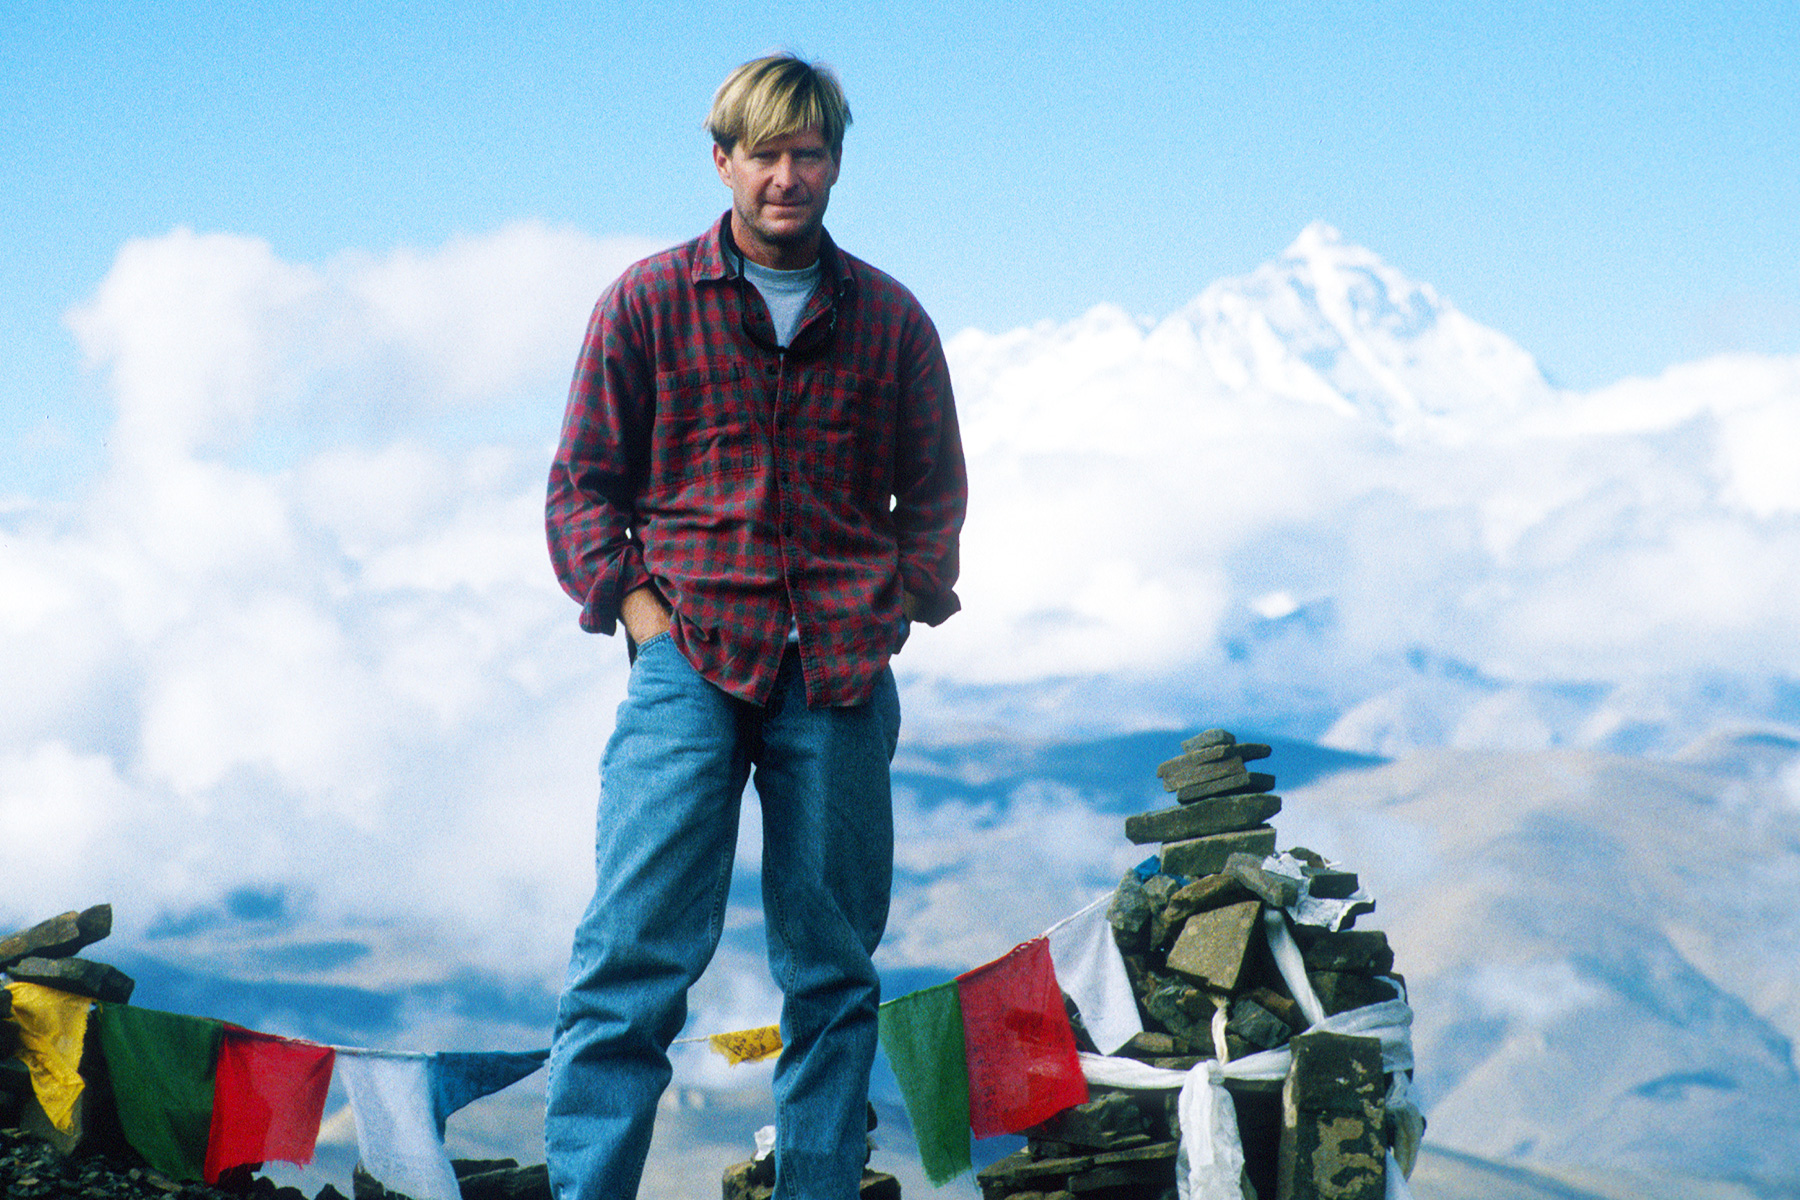 Steven Andrew Martin - Mount Everest, Tibet - Study Abroad Journal - University of Hawaii - China research - Learning Adventures